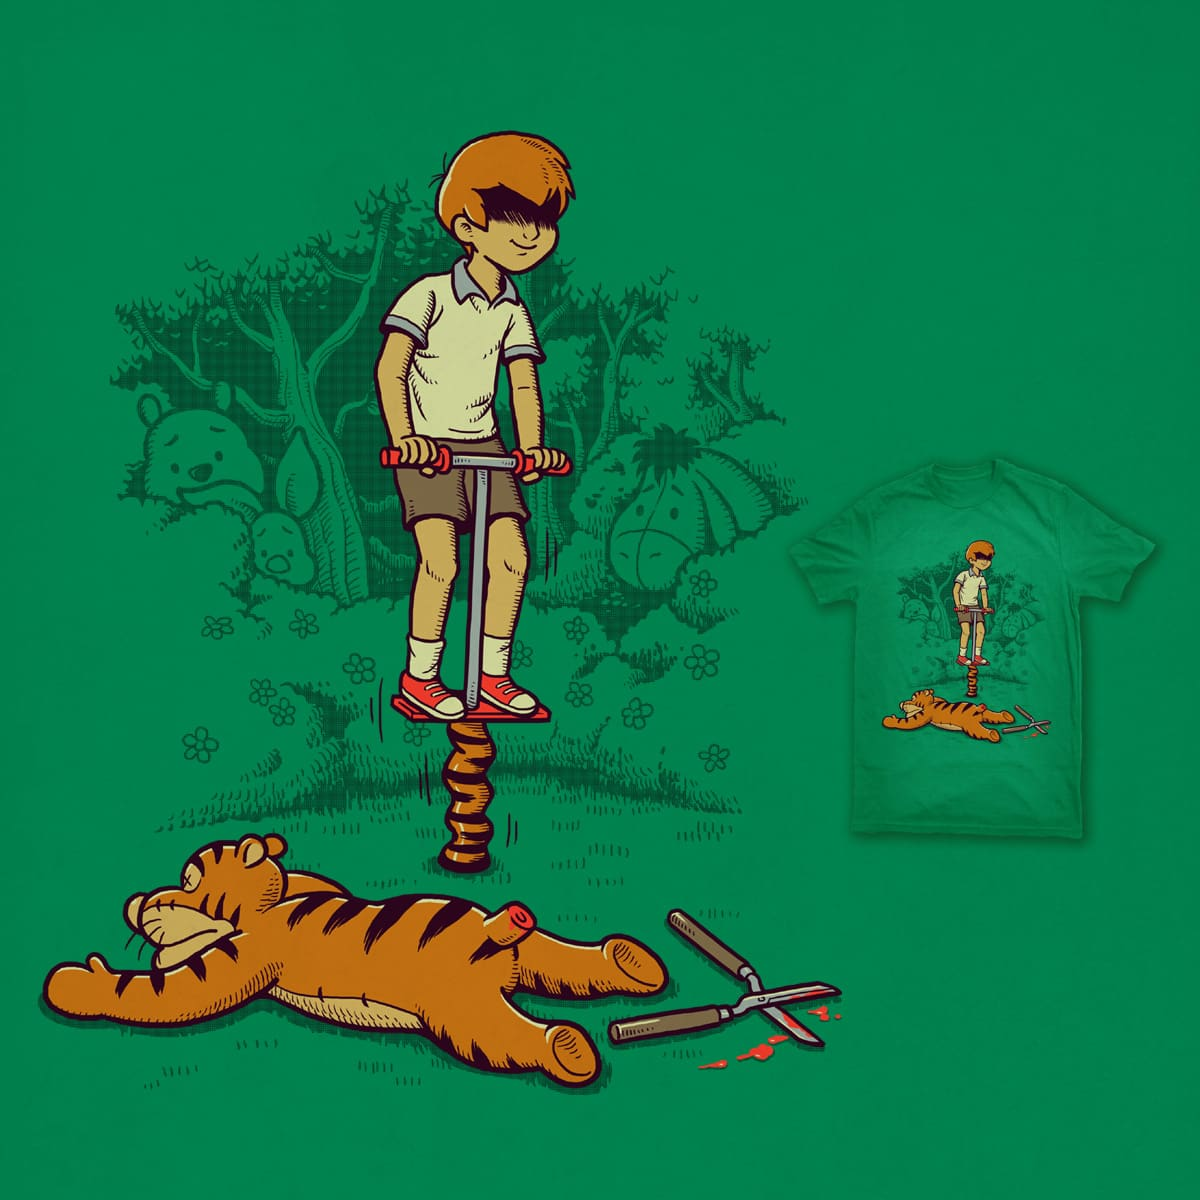 Jumping Stick by ben chen on Threadless